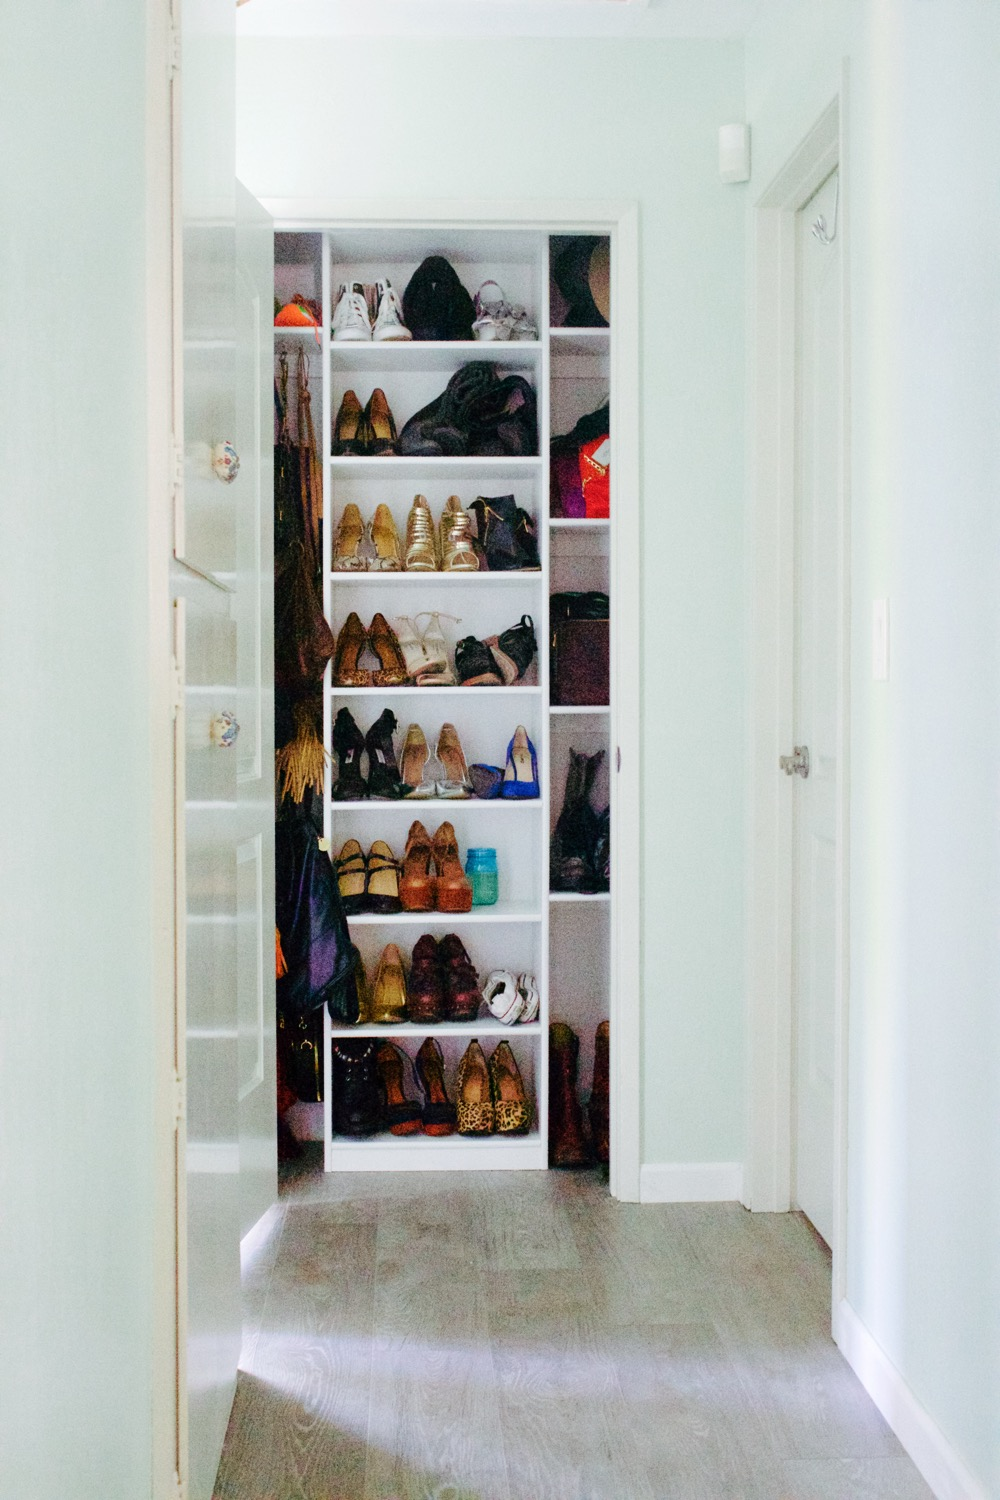 A simple solution for shoe organization